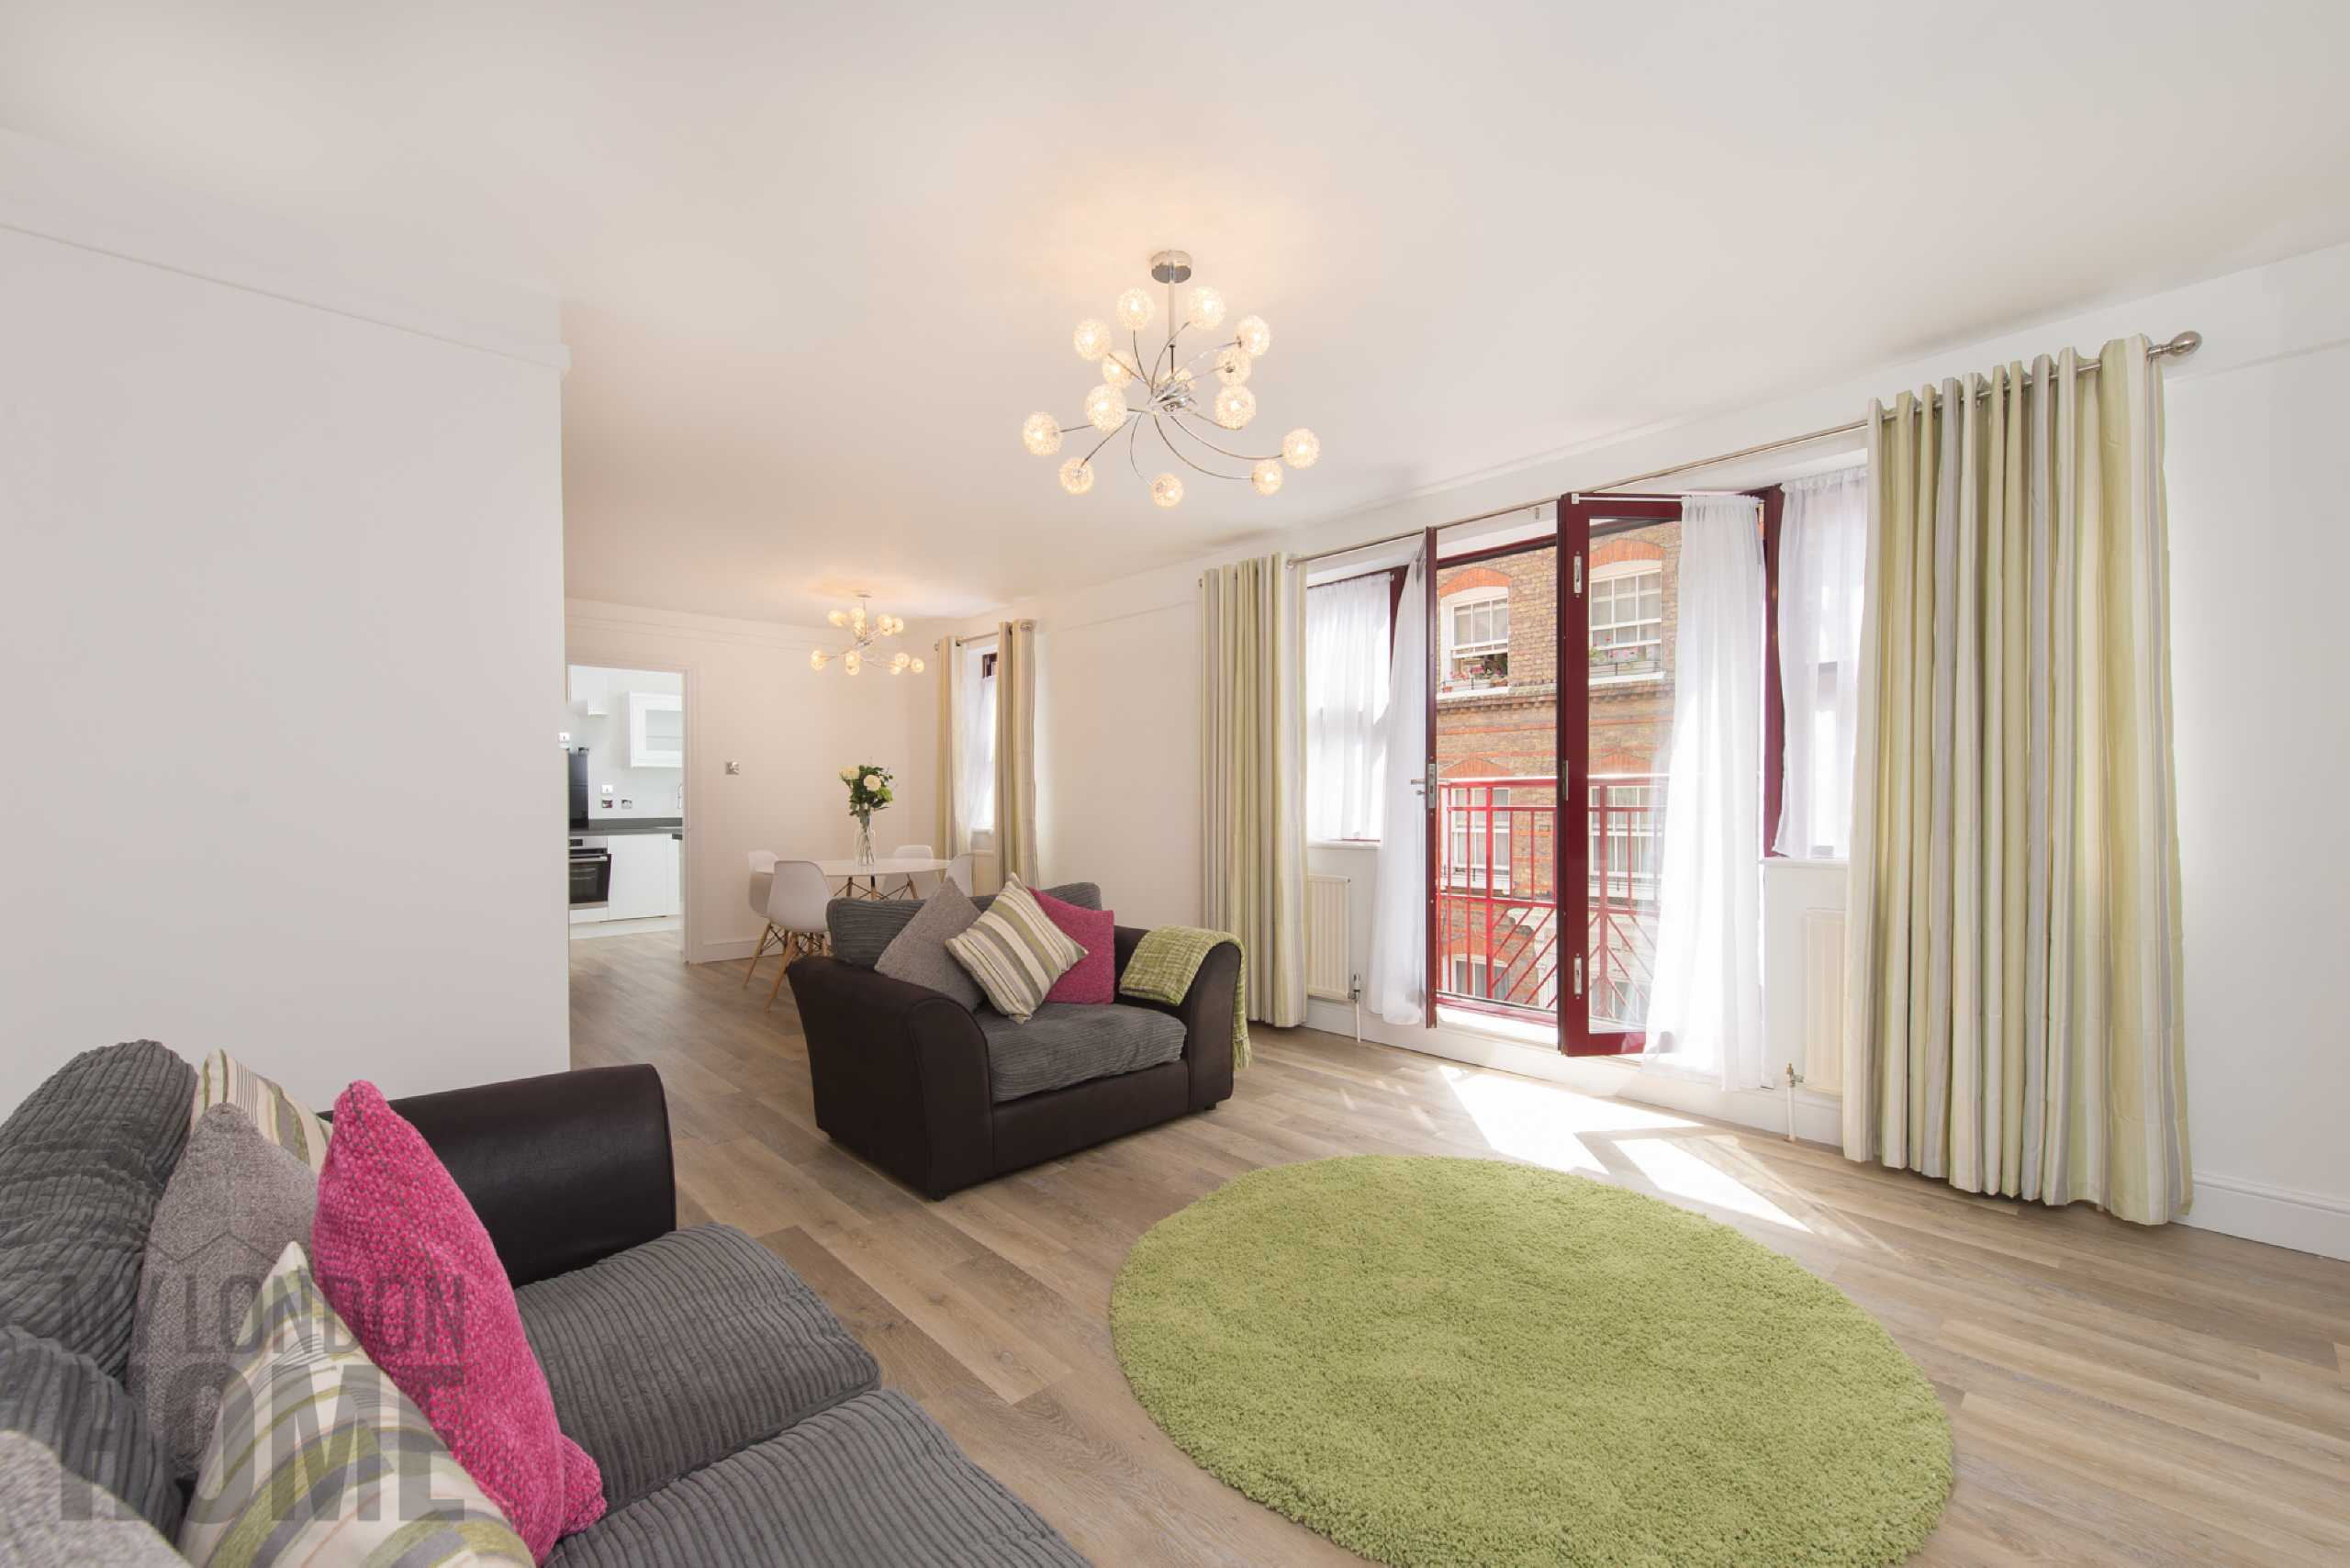 2 Bedrooms Apartment Flat for sale in Old Pye Street, Westminster, London, SW1P